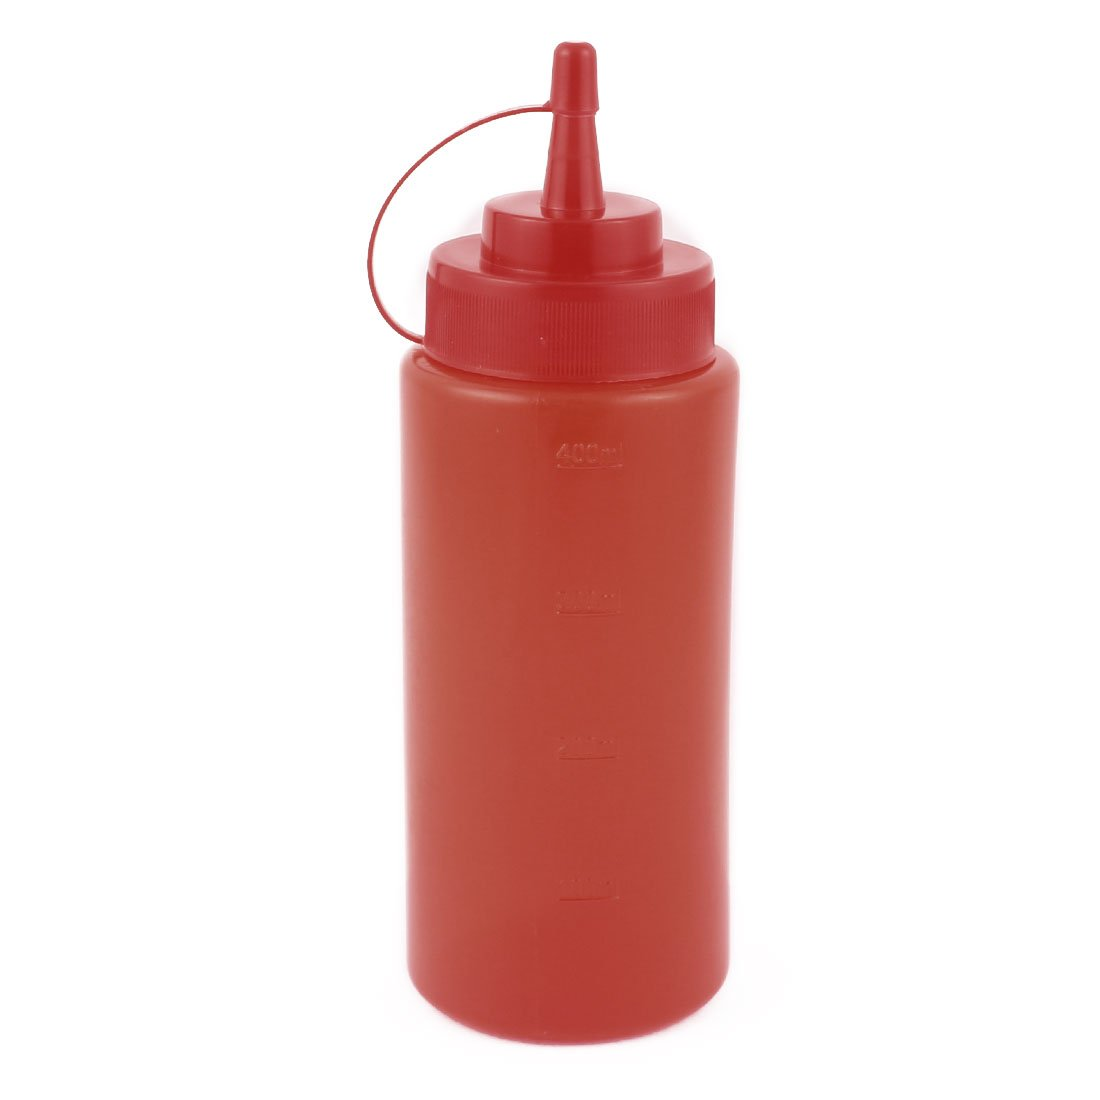 It is very popular uxcell 400ml 16oz Kitchen Plastic Bottles Ketc Sale price Squeeze Condiment